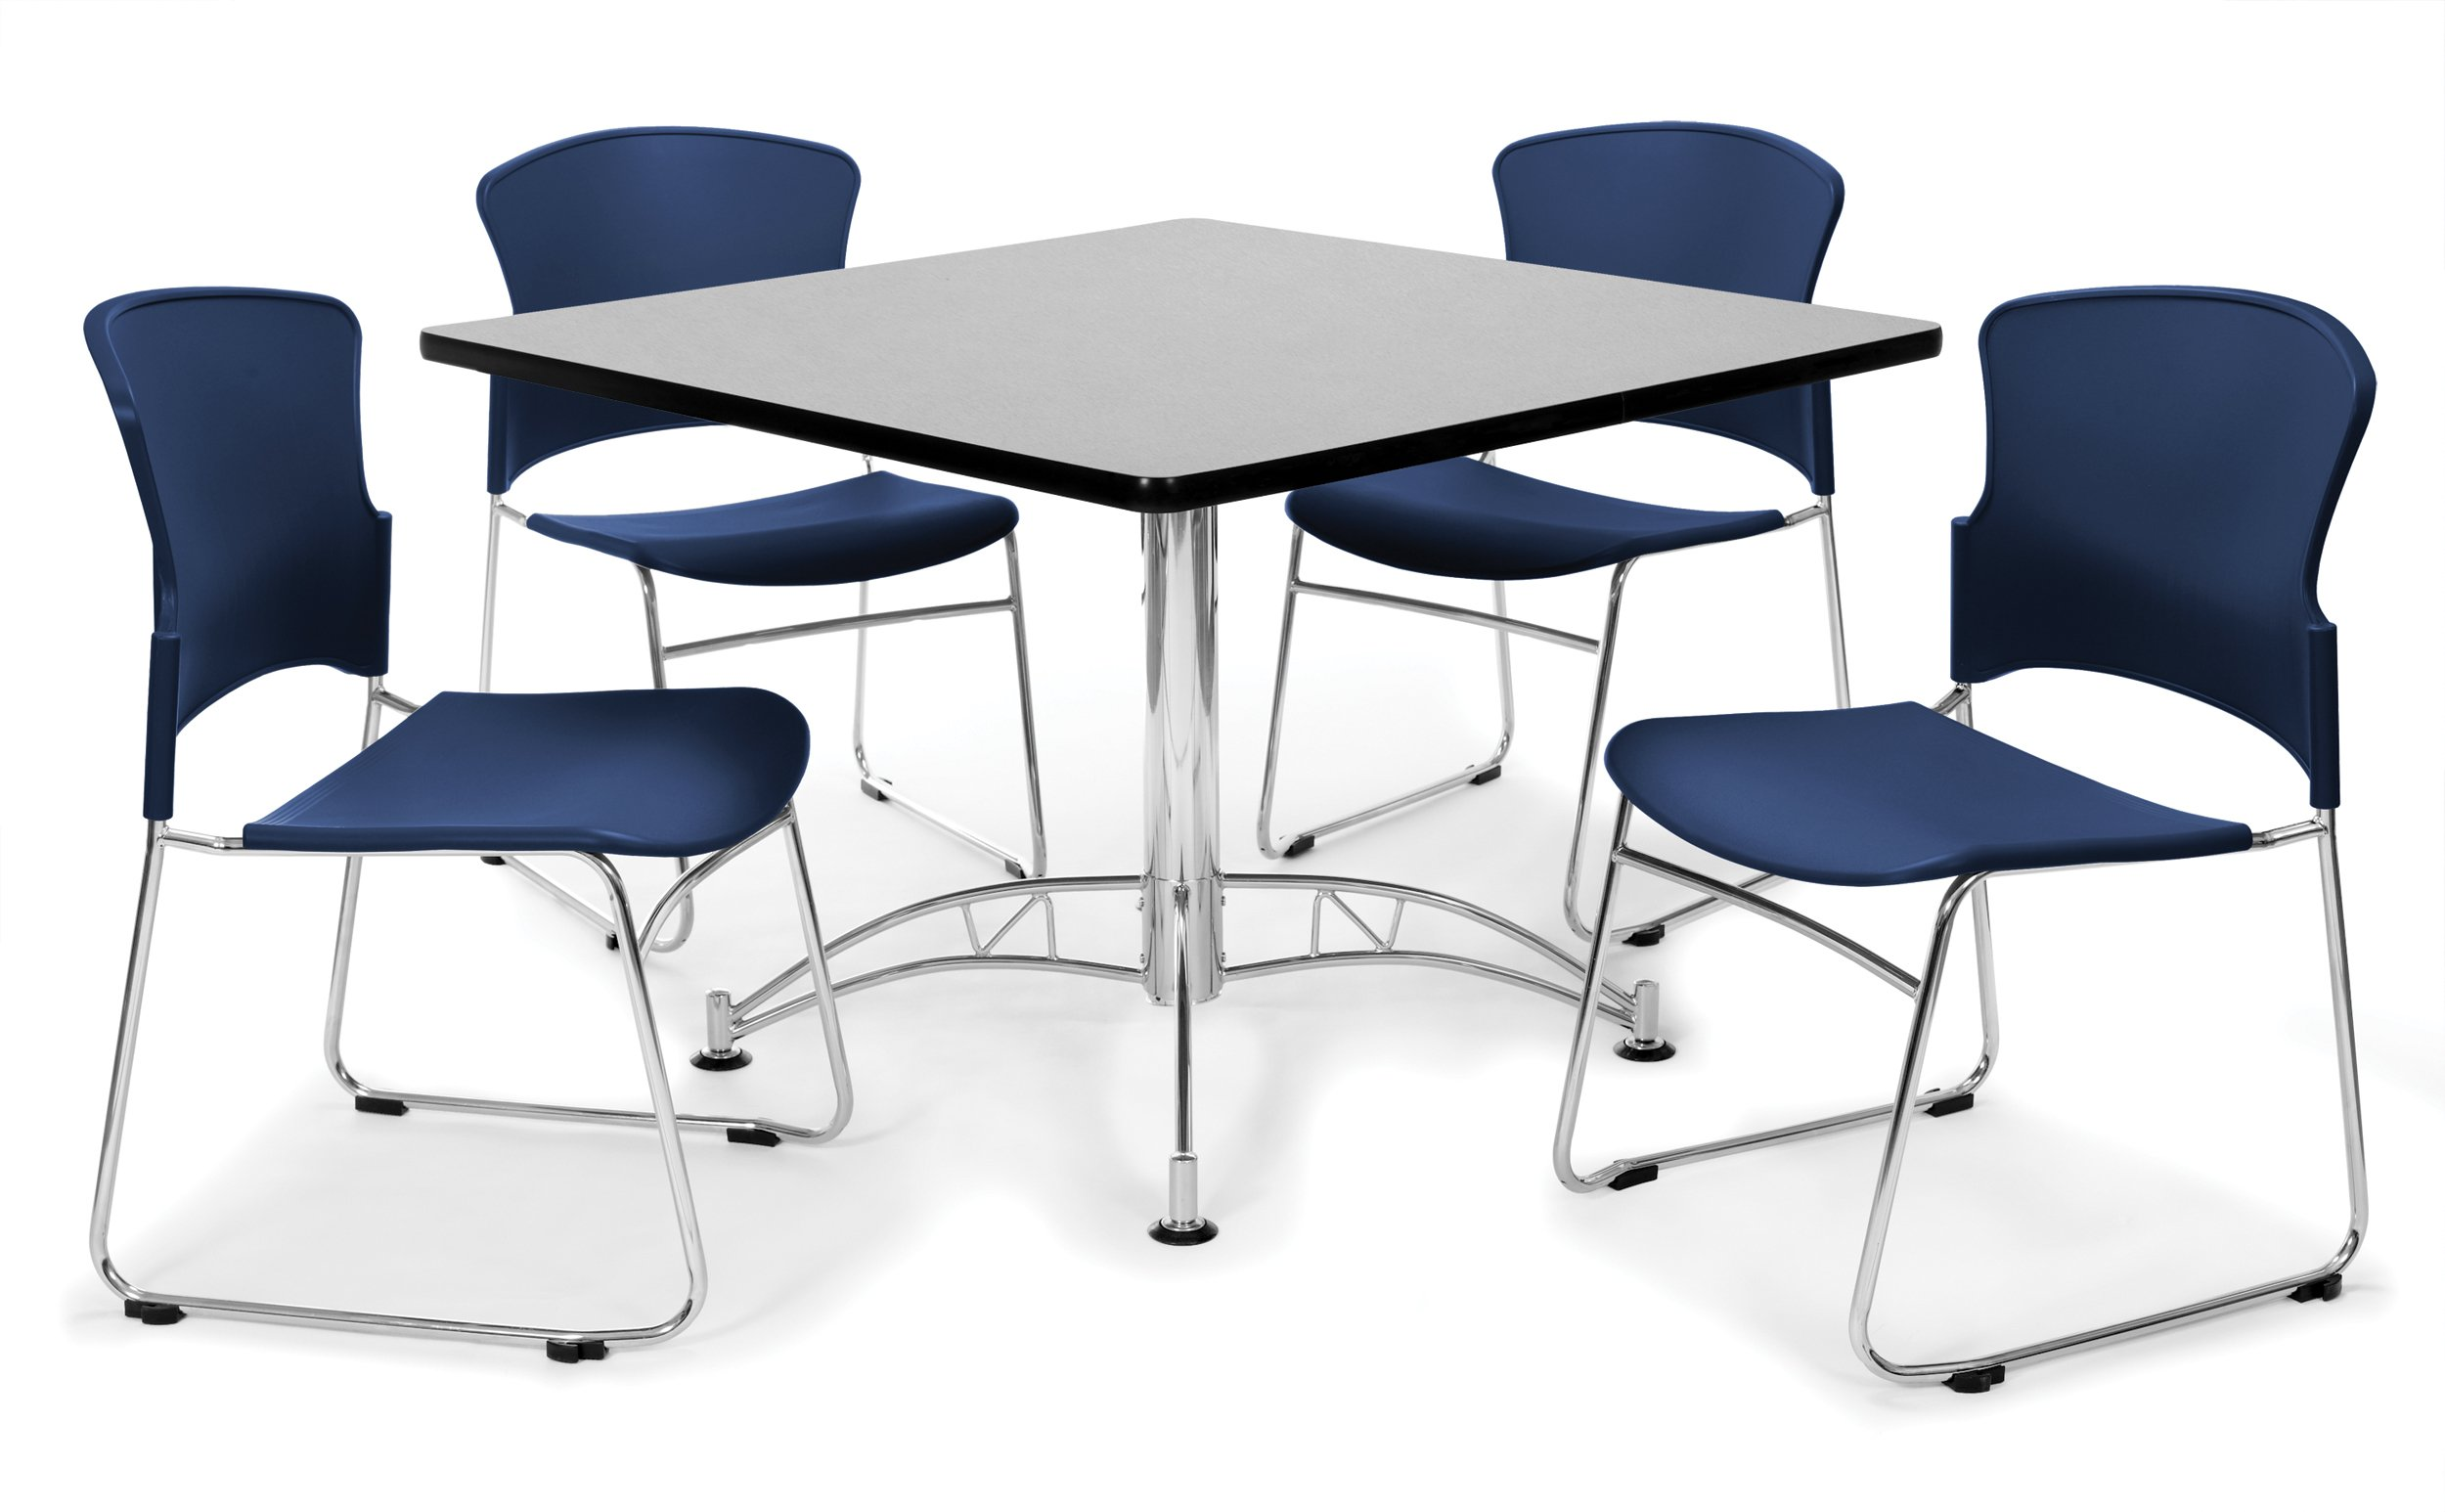 OFM PKG-BRK-11-0008 Breakroom Package, Gray Nebula Table/Navy Chair by OFM